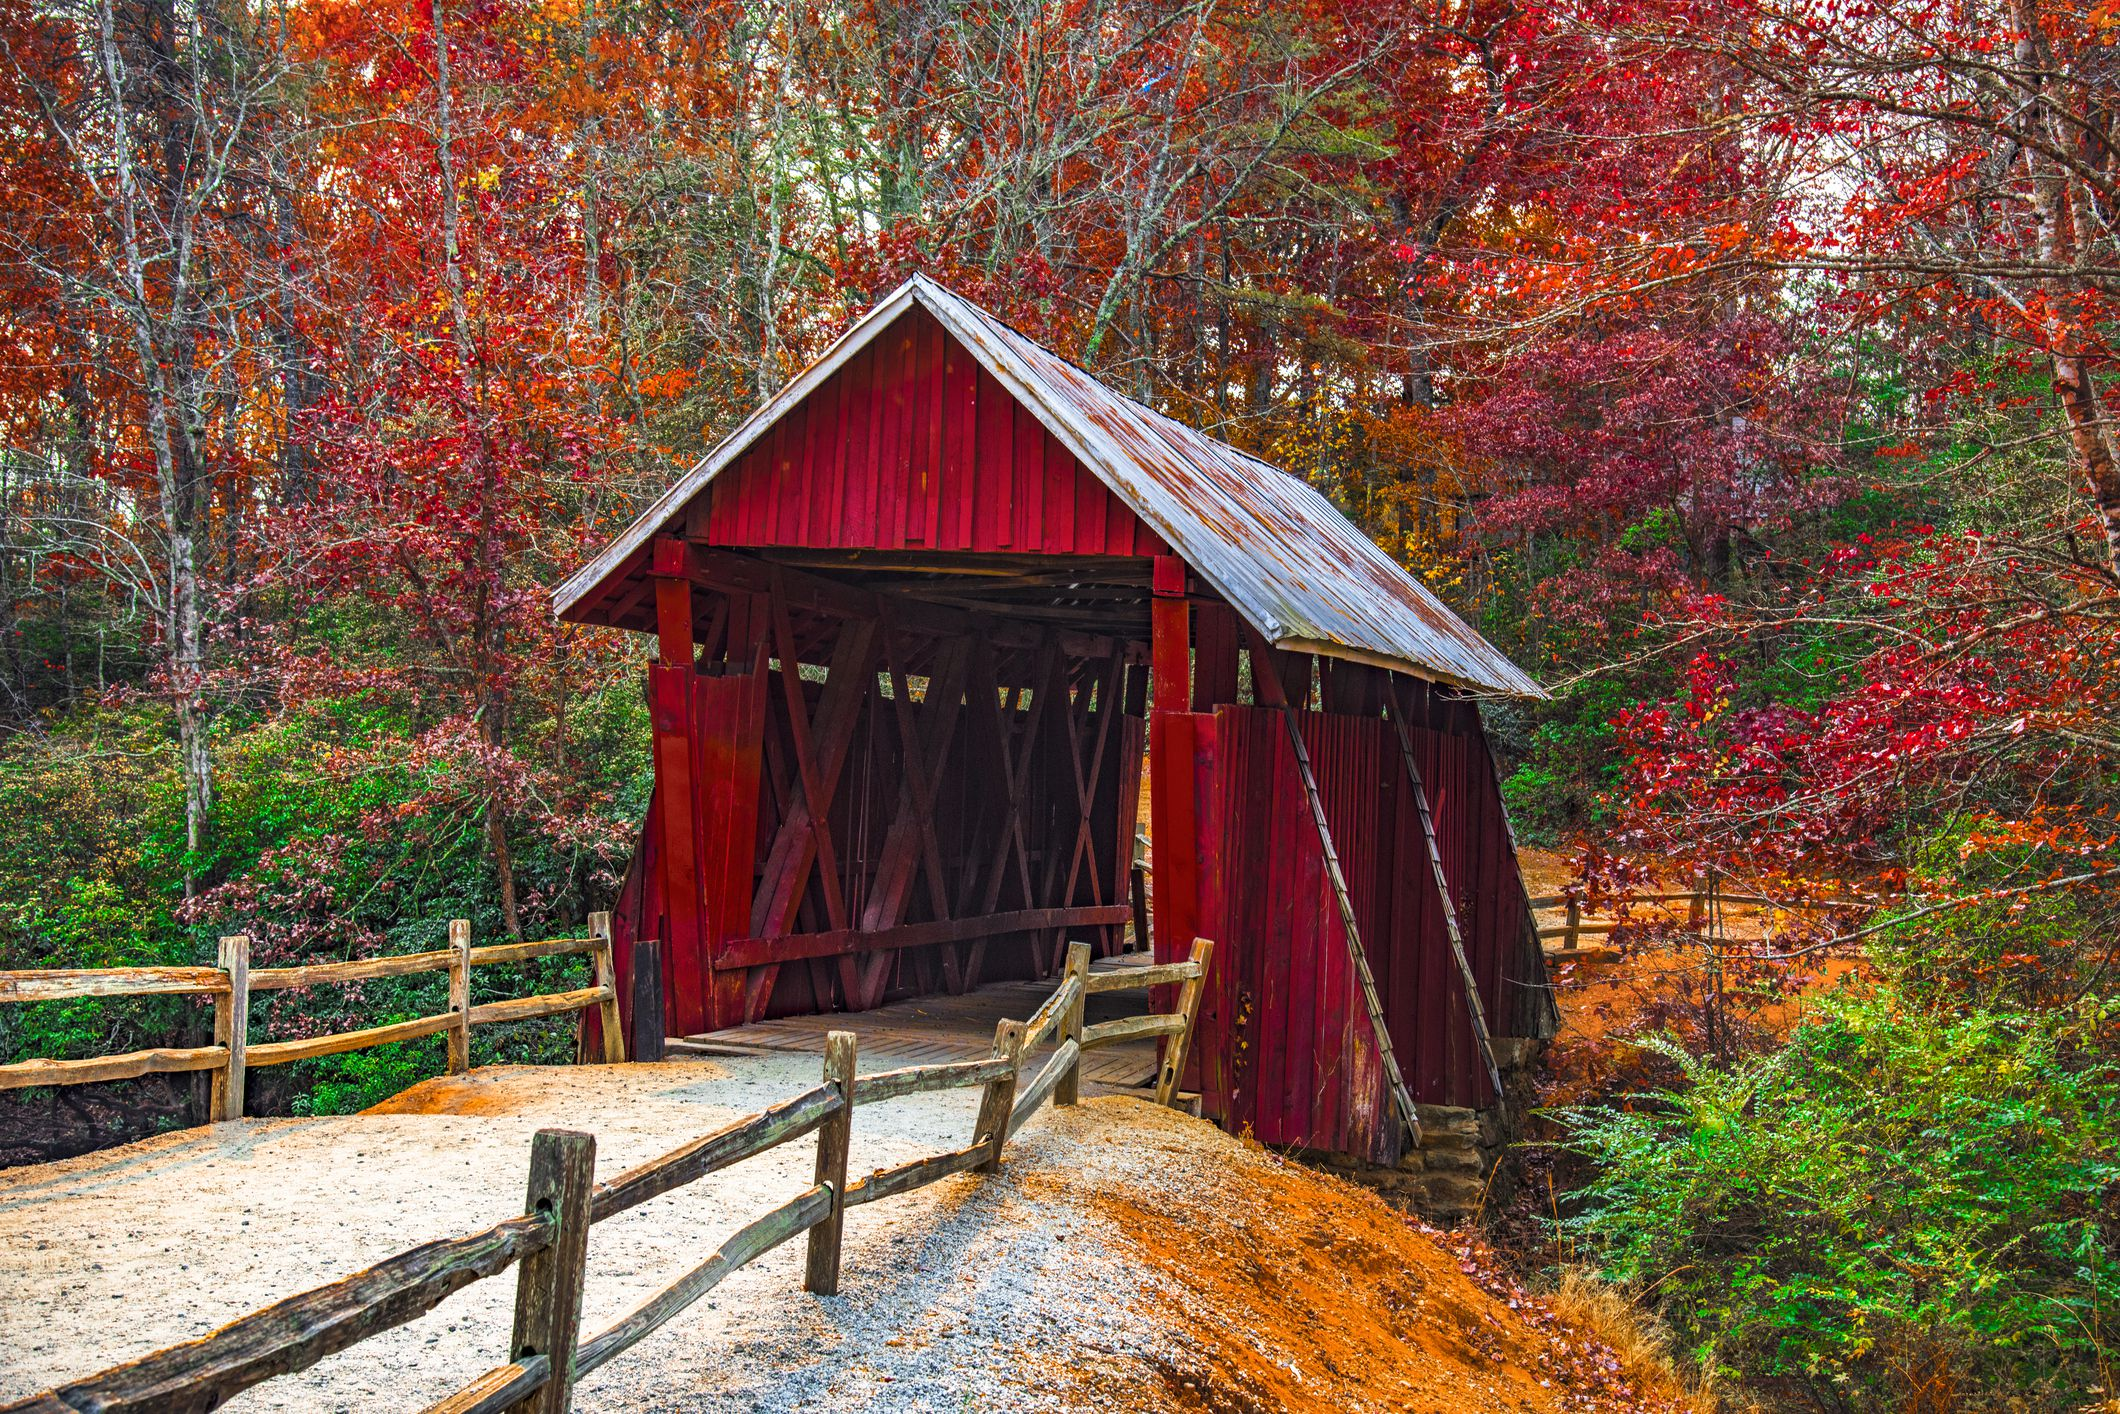 Campbells Covered Bridge with Autumn Fall Colors Landrum Greenville South Carolina